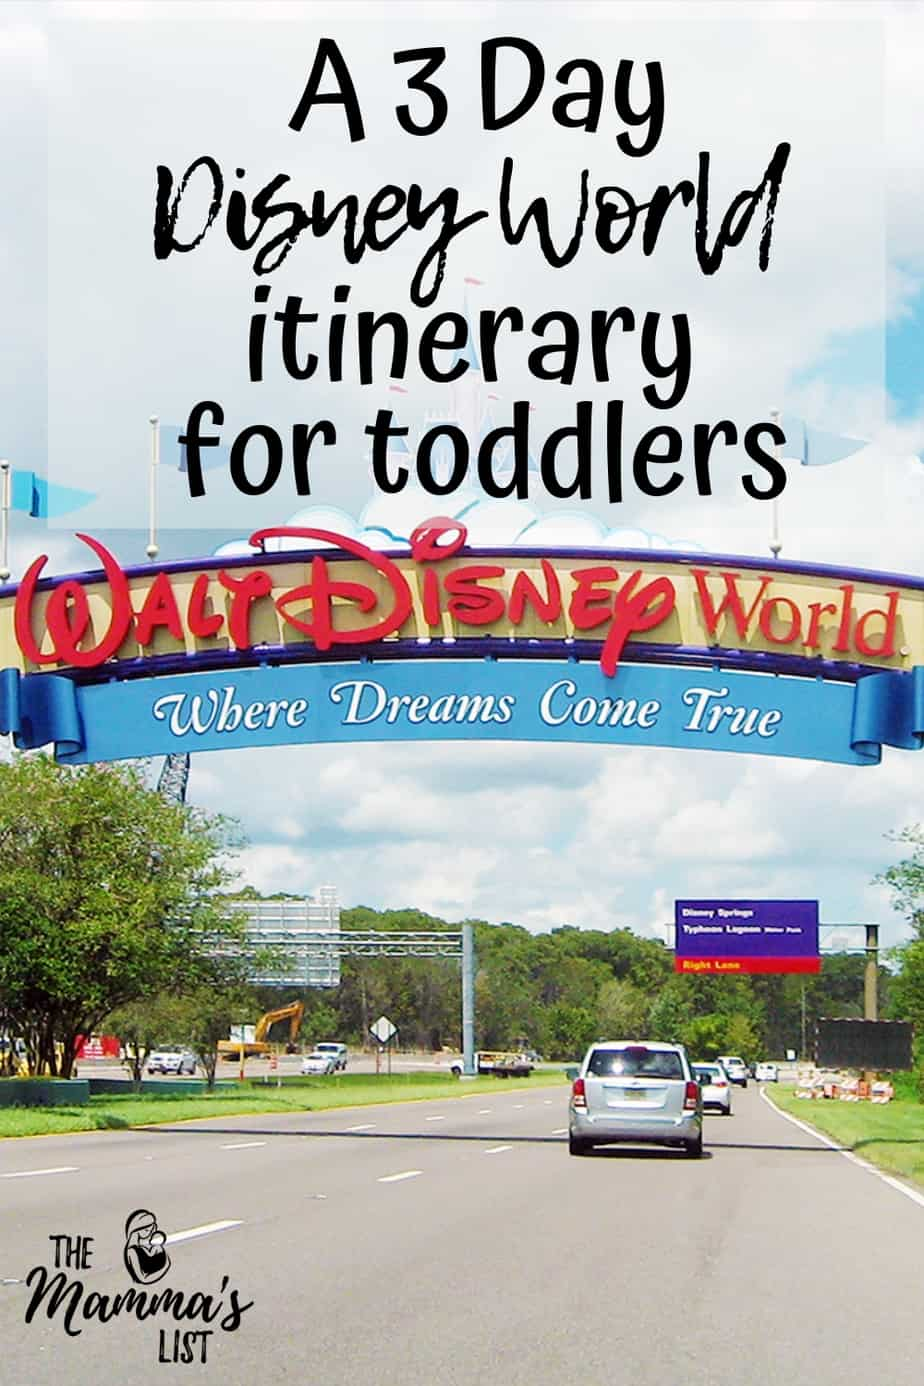 Planning a Disney World vacation with a toddler is easier than you think. You'll just want to visit the parks and attractions that are toddler friendly and plan your trip so you squeeze the most into a toddler friendly day. Disney World is magical at all ages! Check out the toddler friendly rides and attractions we visited for an amazing three-day park experience.